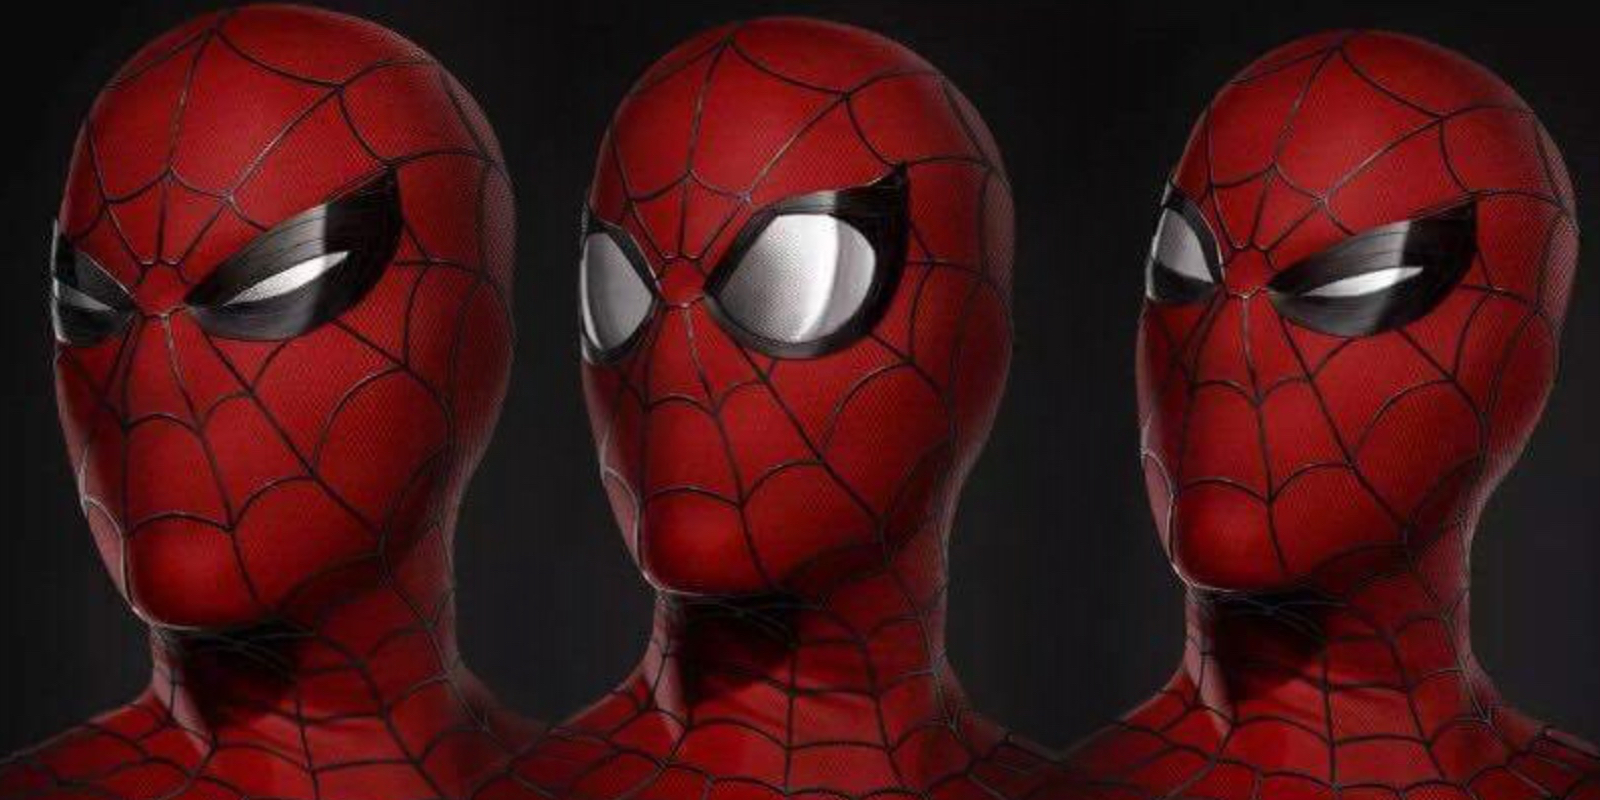 Spider-Man Homecoming Suit Expressions